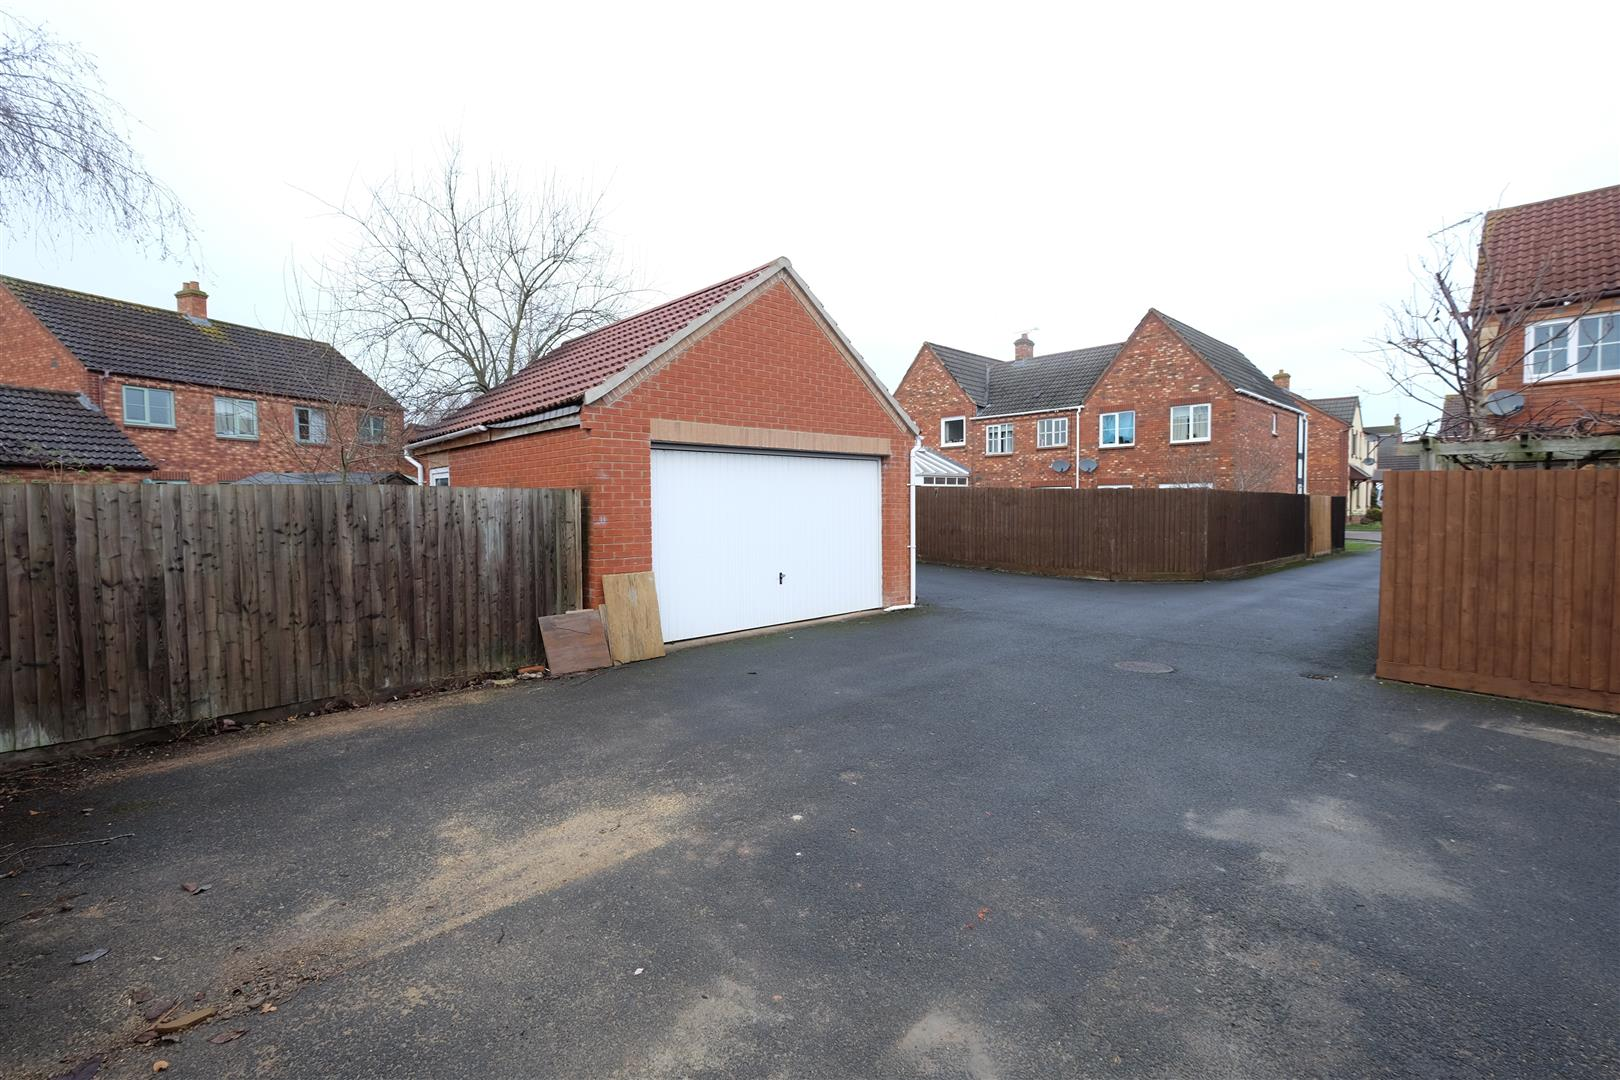 Images for DETACHED DOUBLE GARAGE - TEWKESBURY EAID:hollismoapi BID:11